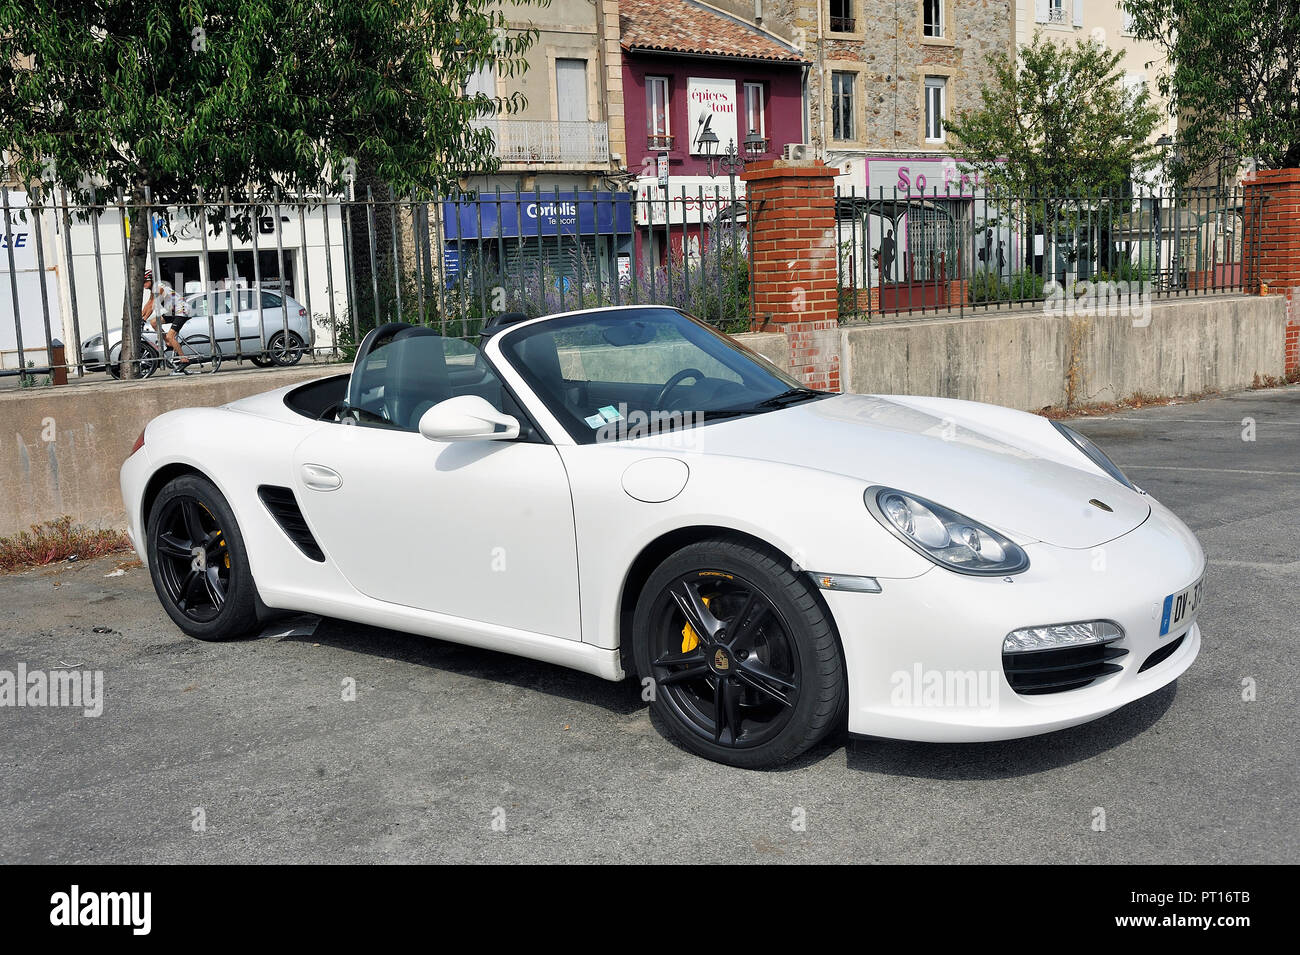 Porsche Convertible White Sports Car On A Parking Lot Of The City Of Ales In The Department Of Gard Stock Photo Alamy